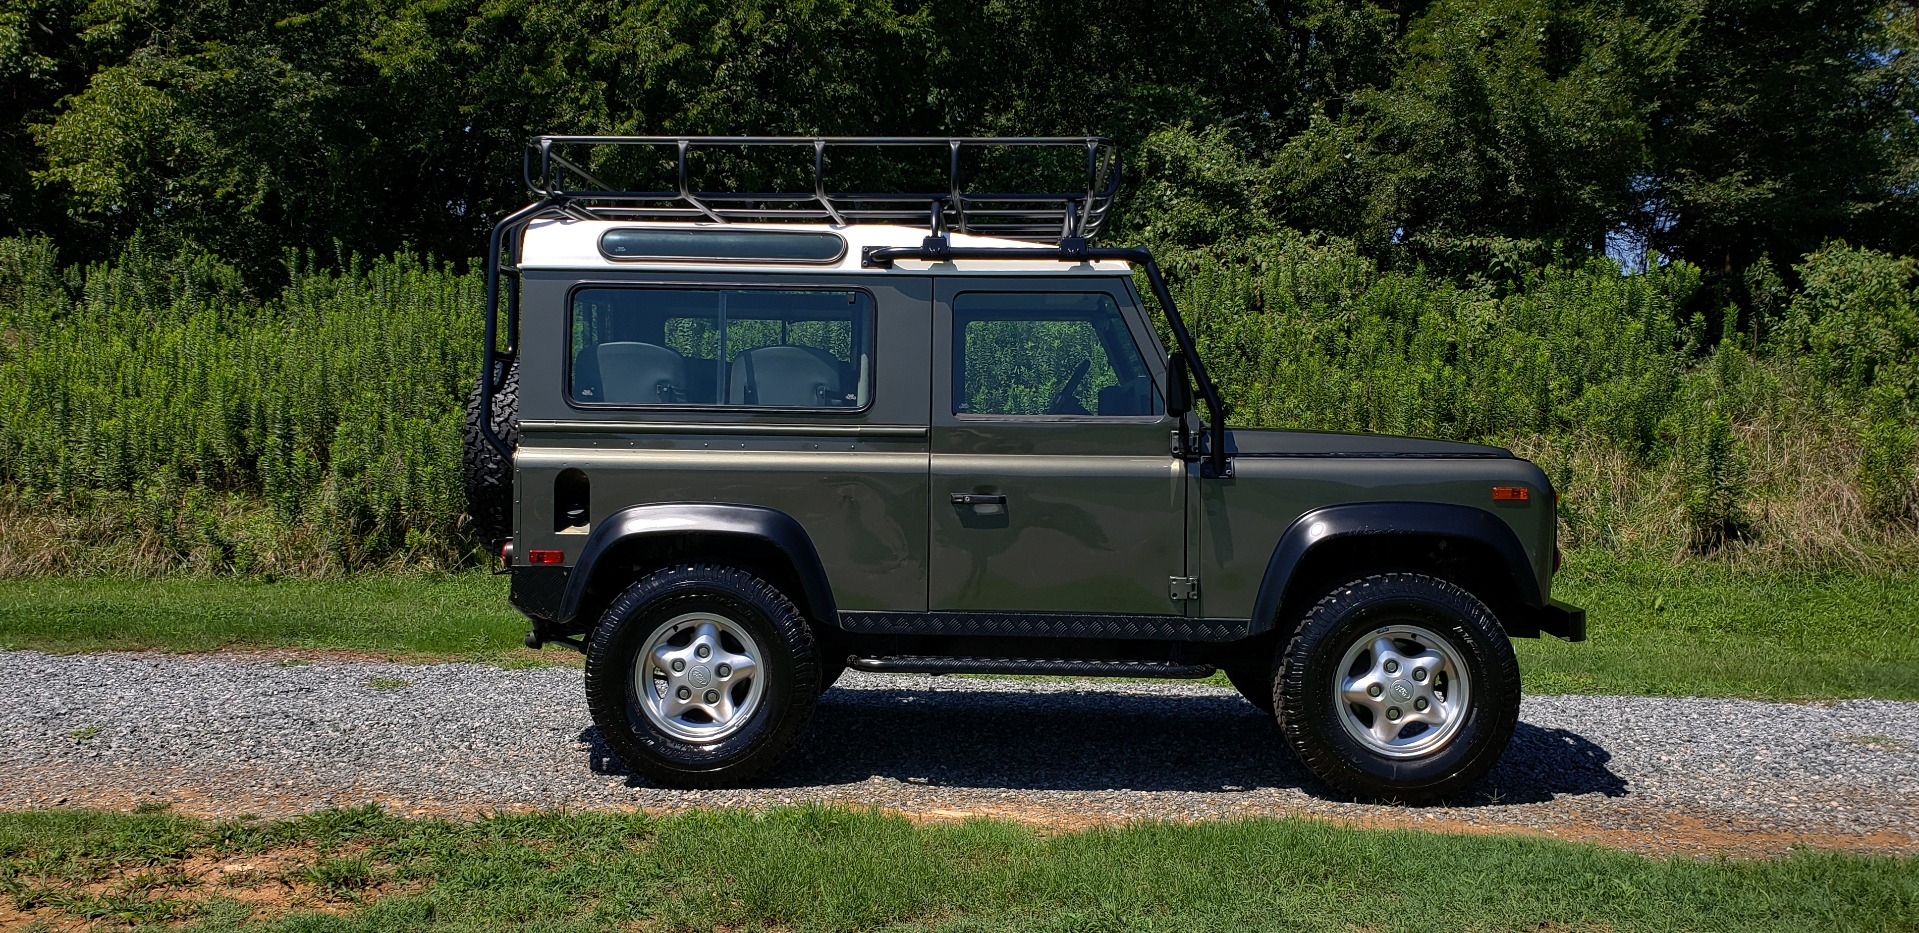 Used 1997 Land Rover DEFENDER 90 LIMITED EDITION / HARD-TOP / 4WD / FULLY RESTORED / LOW MILES for sale $119,000 at Formula Imports in Charlotte NC 28227 6